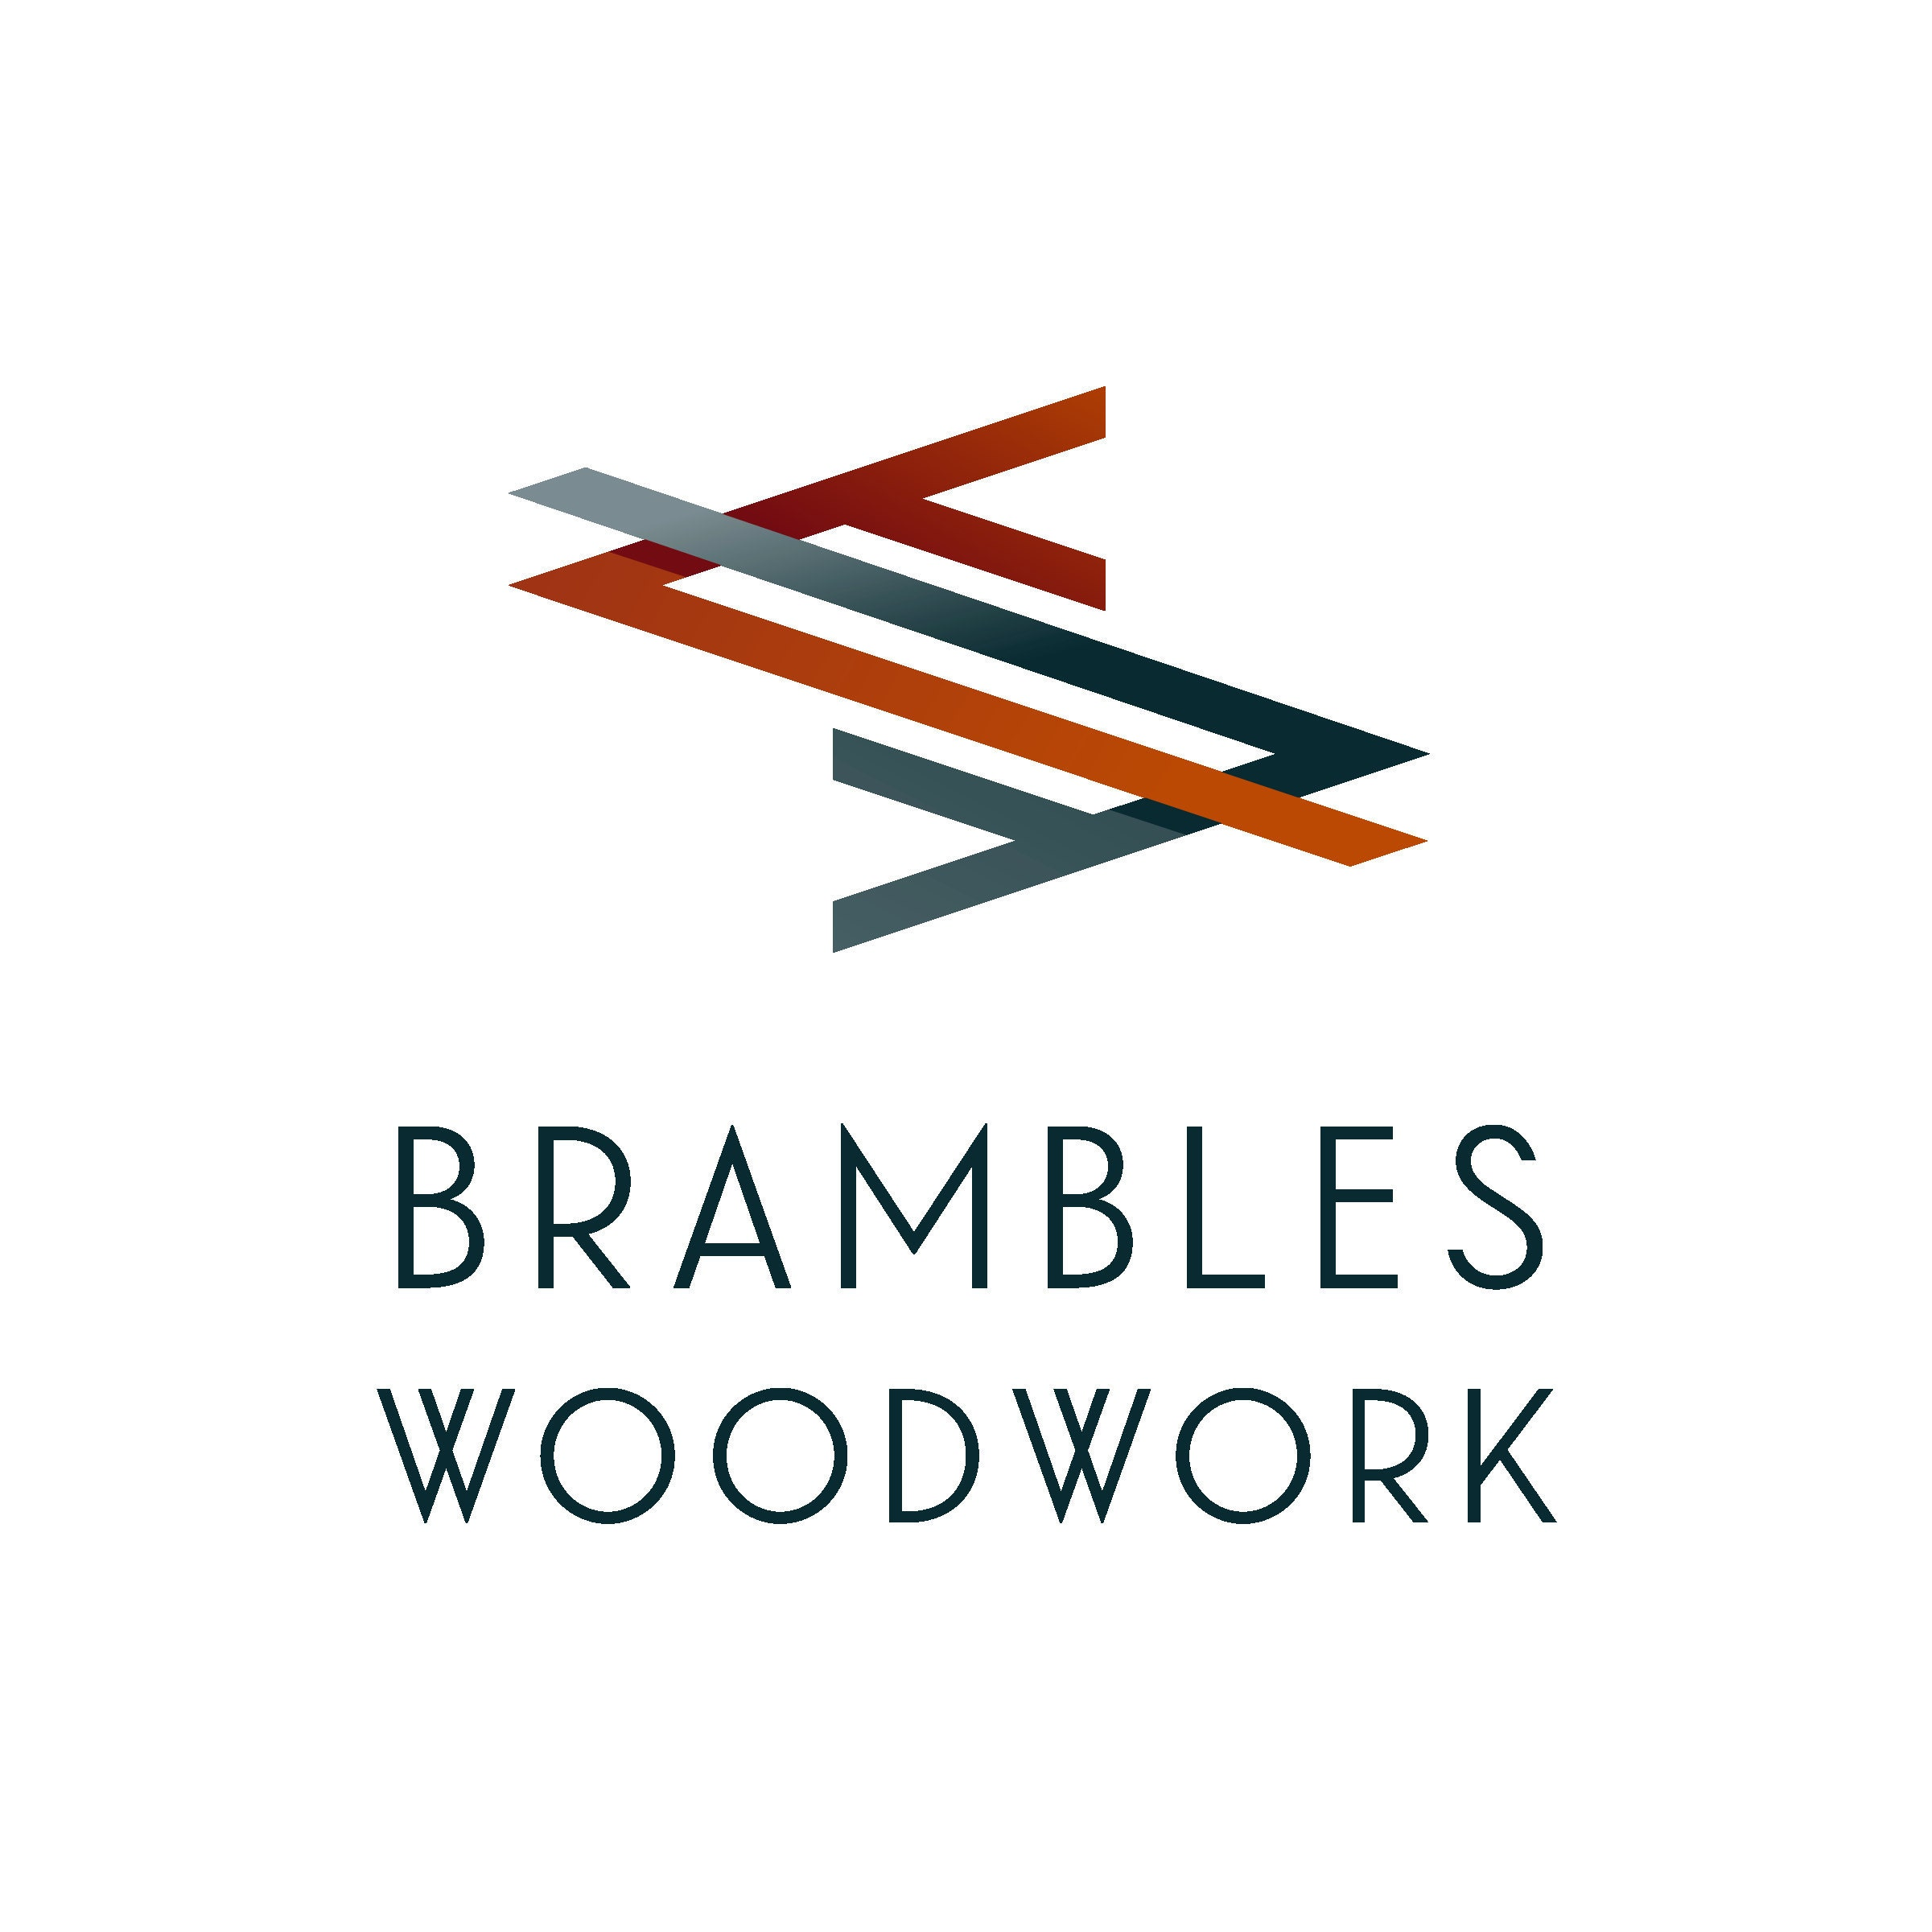 Brambles Woodwork Natural Handmade Jewelry By Brambleswoodwork